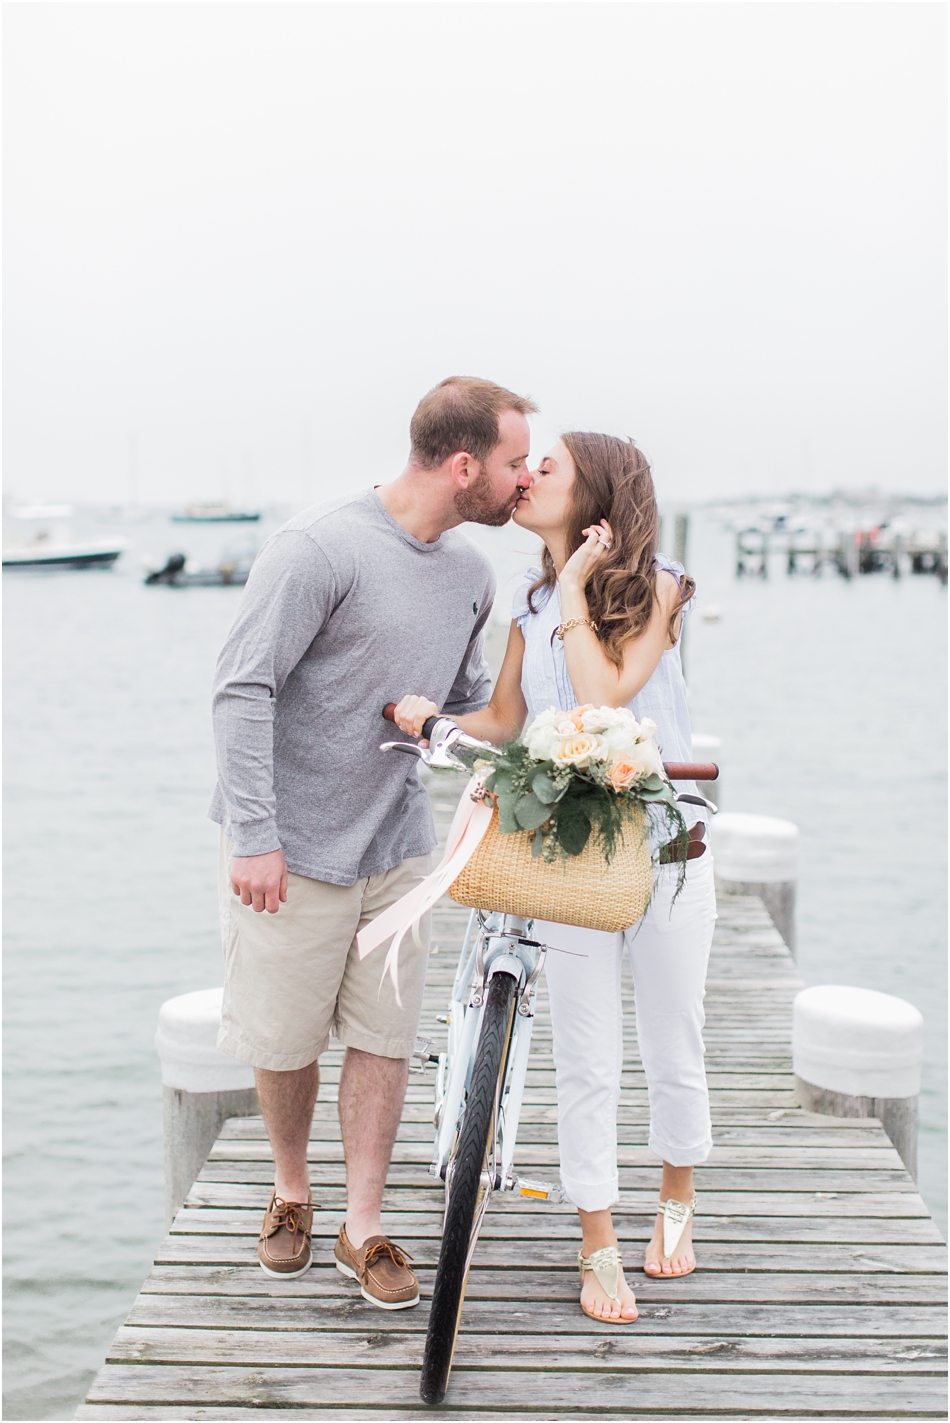 nantucket_engagement_session_downtown_bike_basket_breezer_downtown_8_boston_massachusetts_cape_cod_new_england_wedding_photographer_Meredith_Jane_Photography_photo_1435.jpg